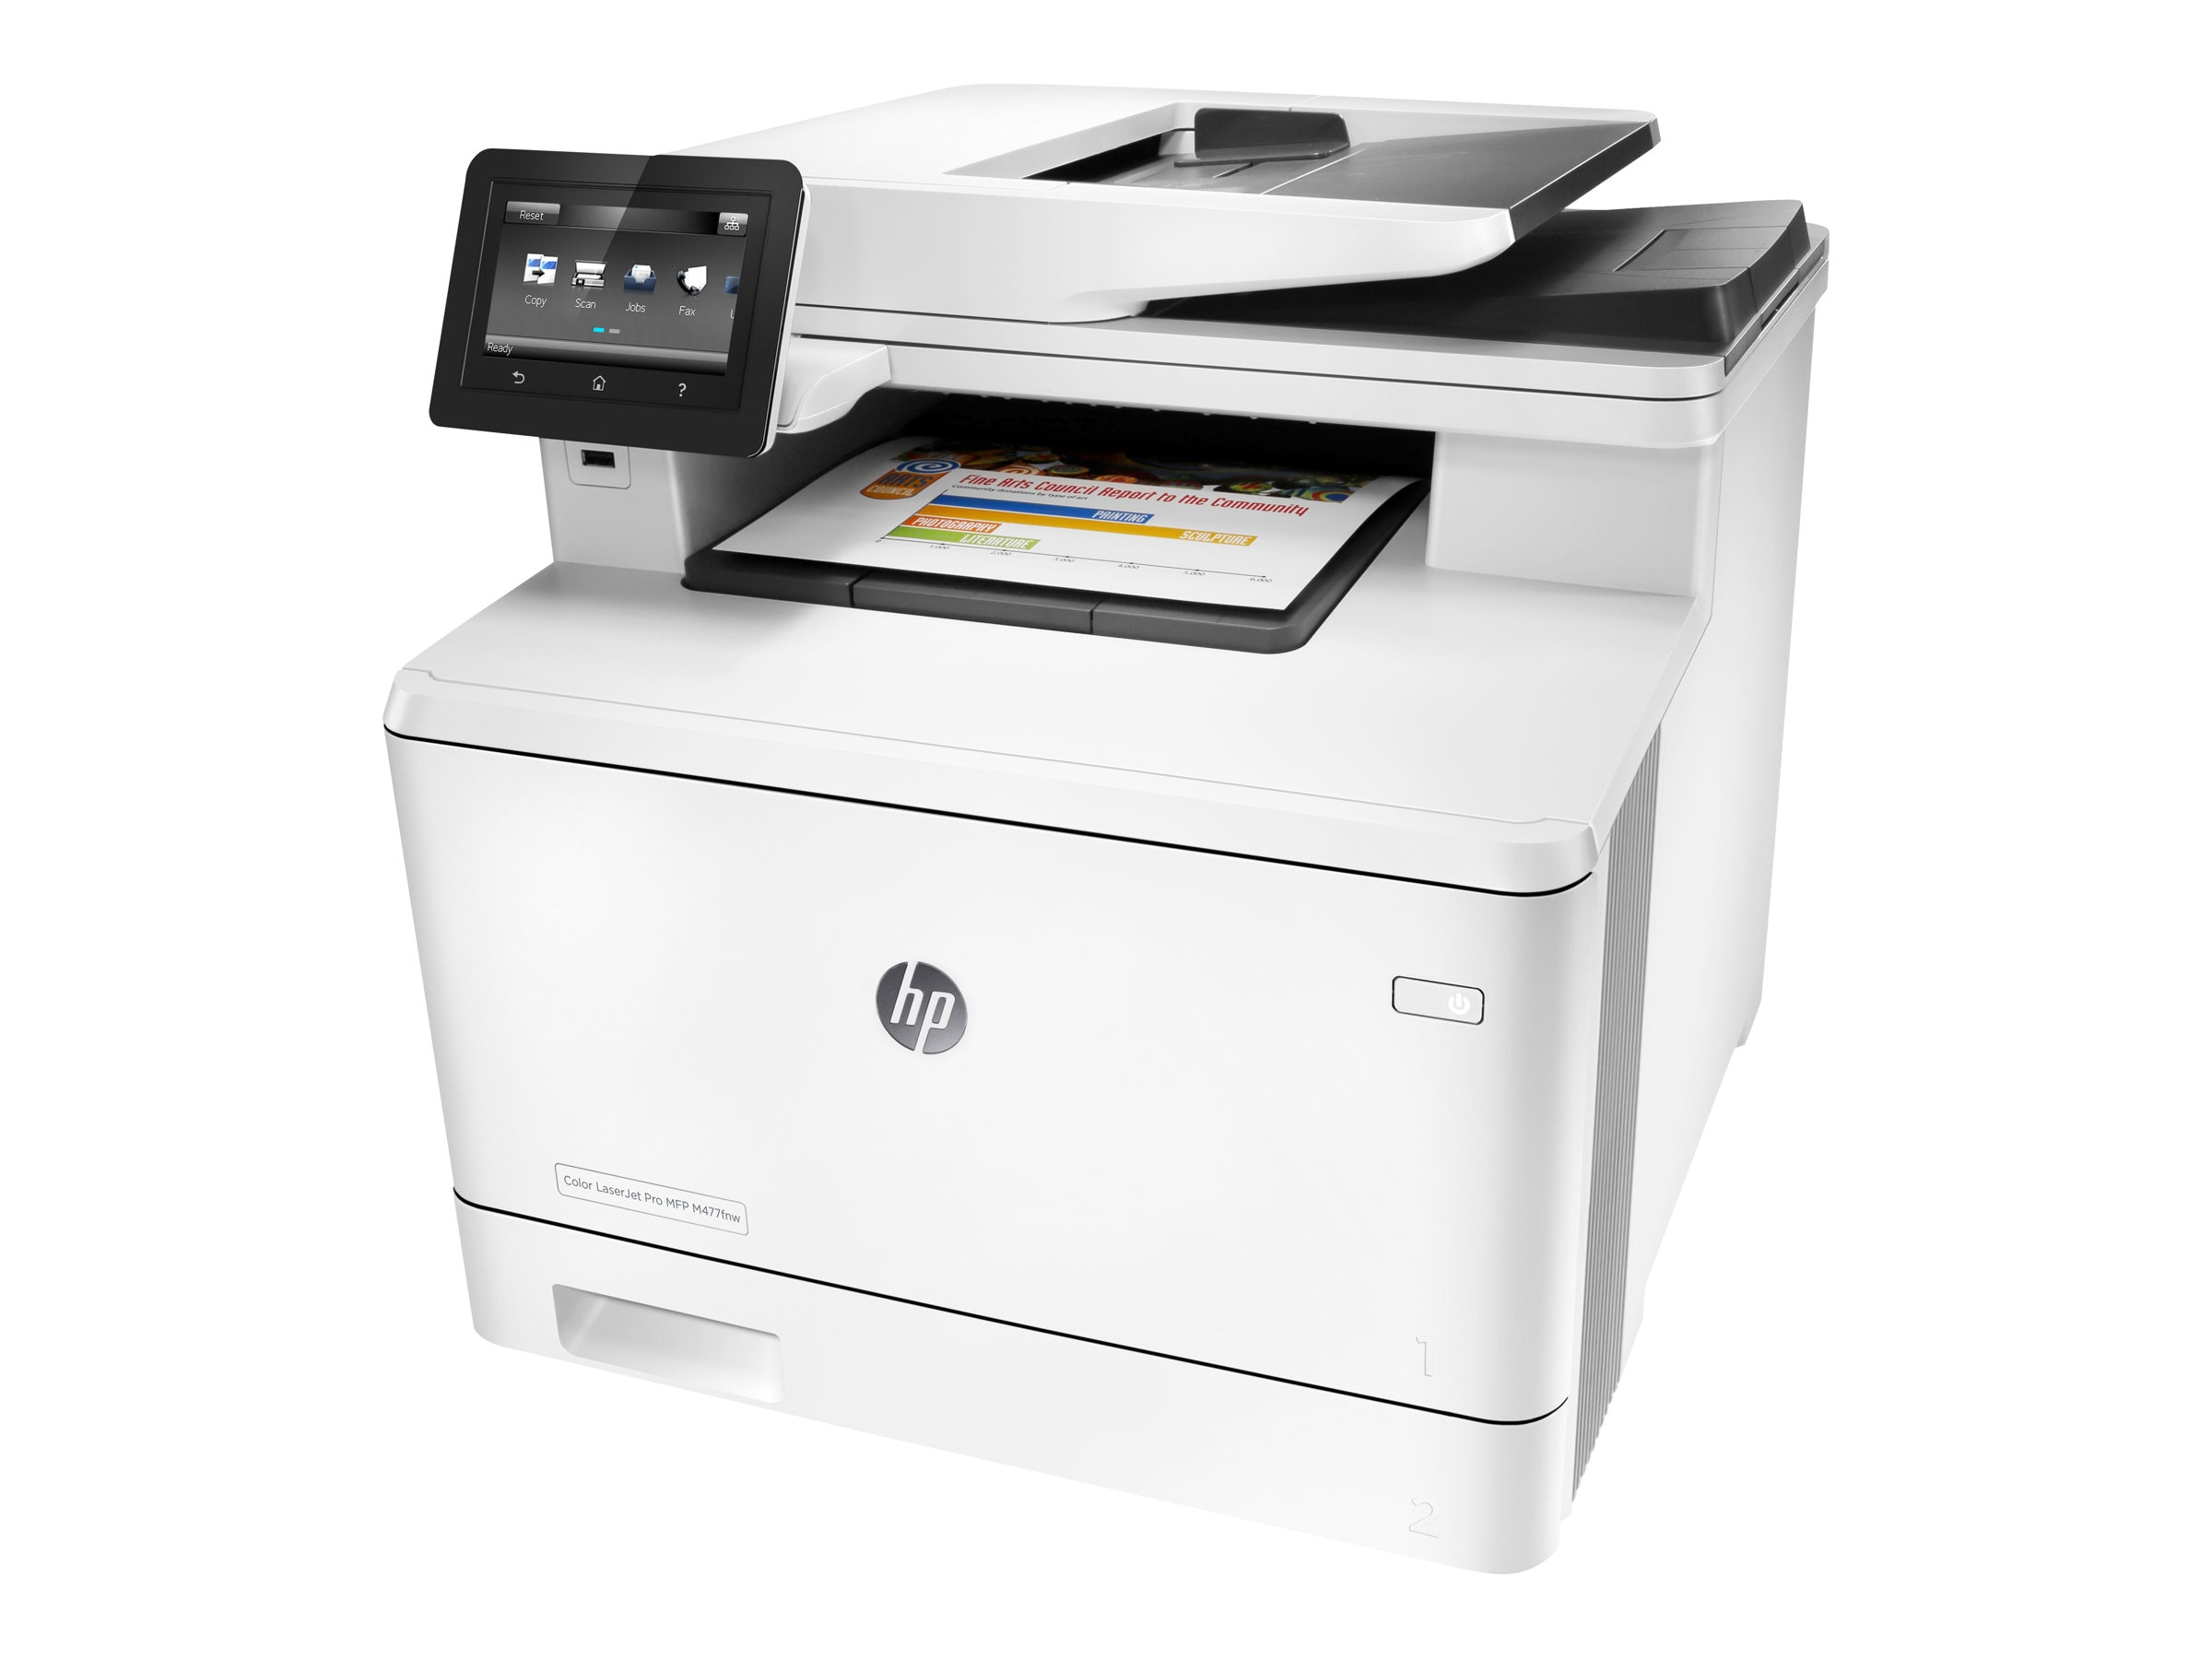 HP Color LaserJet Pro MFP M477fnw ($529 - $150 Instant Rebate = $379 Expires 2 28 17)